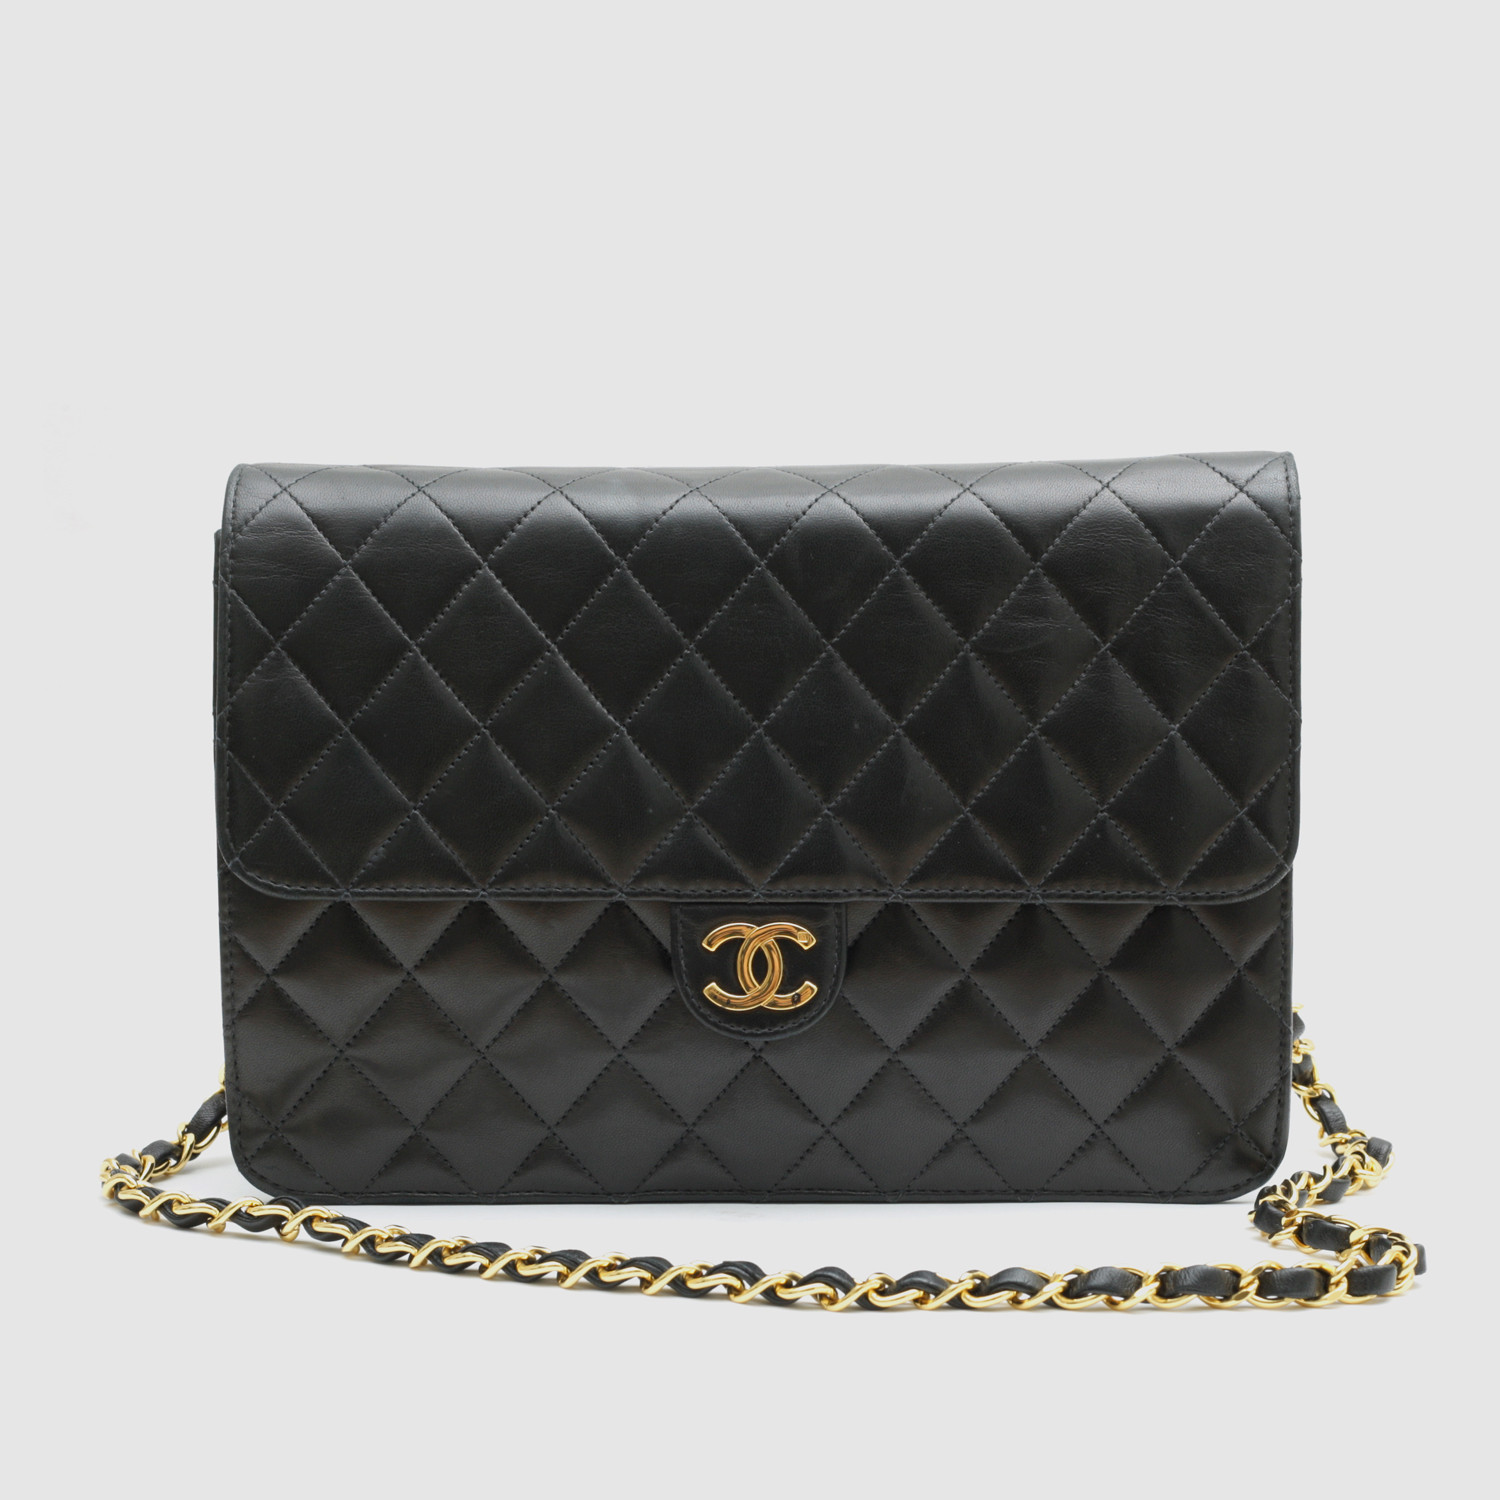 Chanel Flap Bag Black Quilted Leather